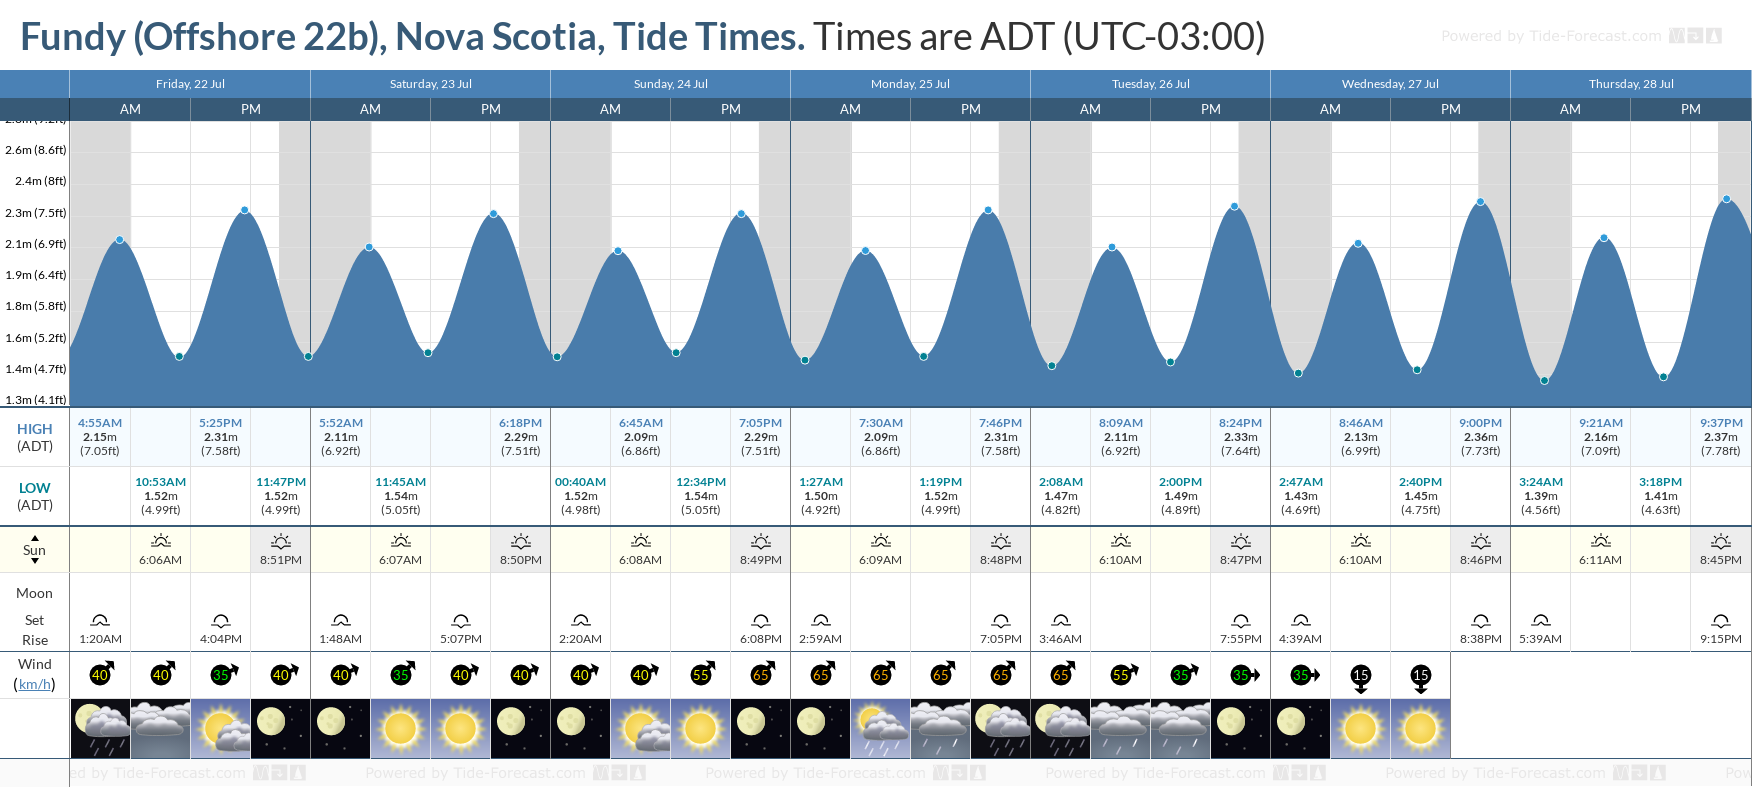 Fundy (Offshore 22b), Nova Scotia Tide Chart including high and low tide tide times for the next 7 days